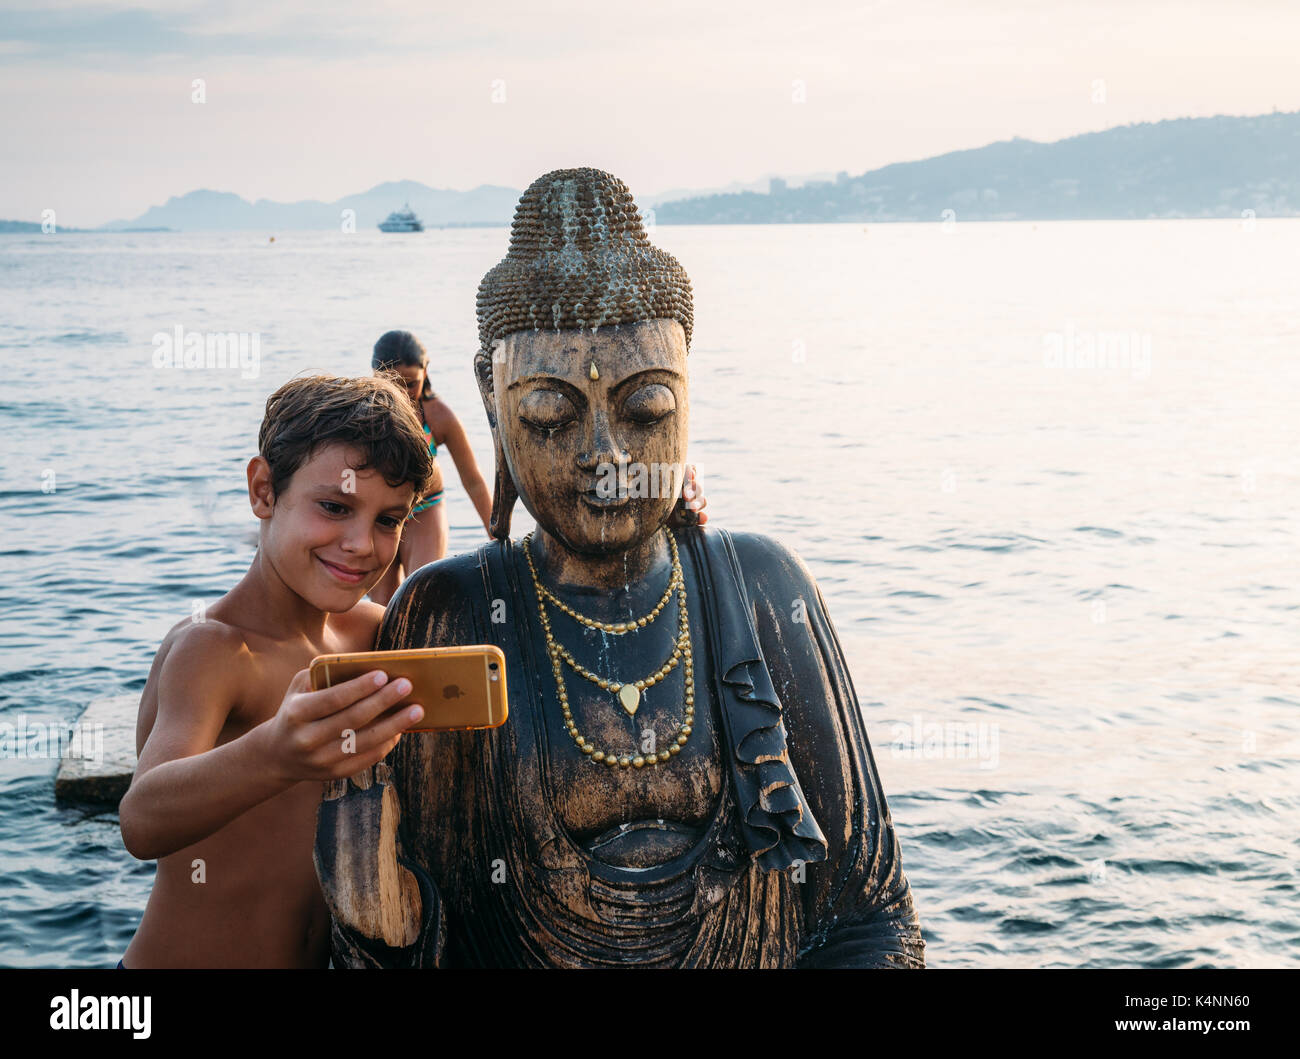 a-young-boy-takes-a-selfie-with-a-statue-of-buddha-on-a-beach-in-juan-K4NN60.jpg